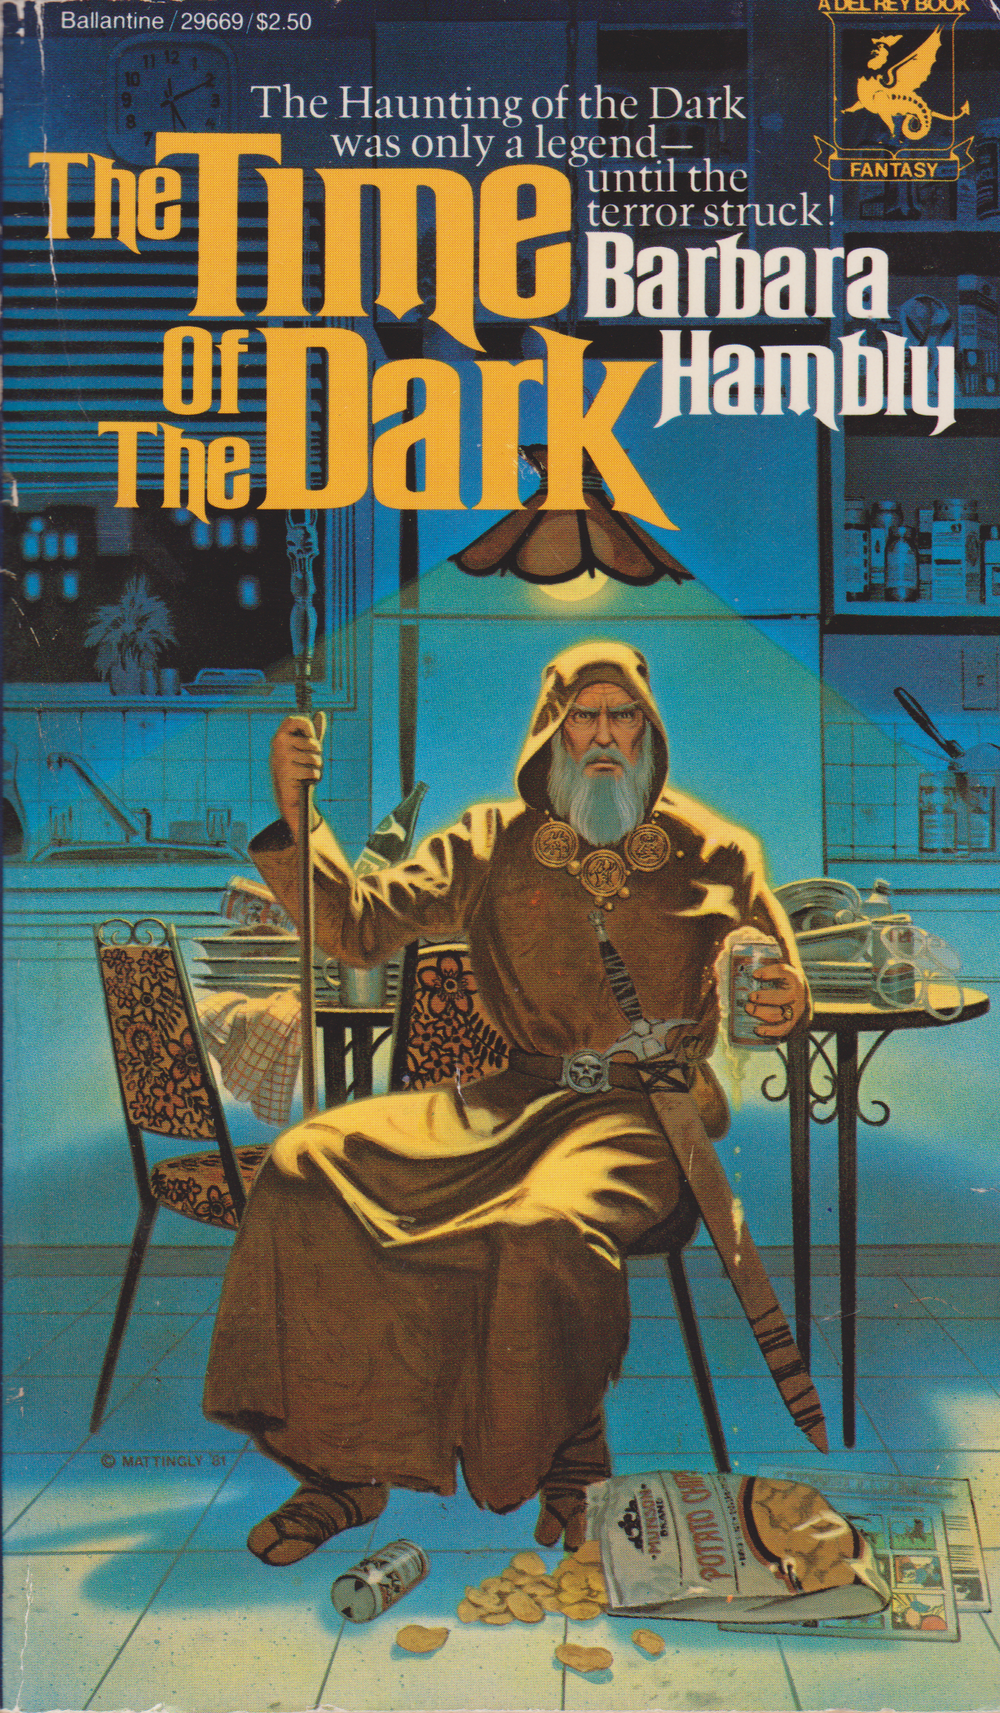 The Time of the Dark by Barbara Hambly - fronttttt - Copy.png